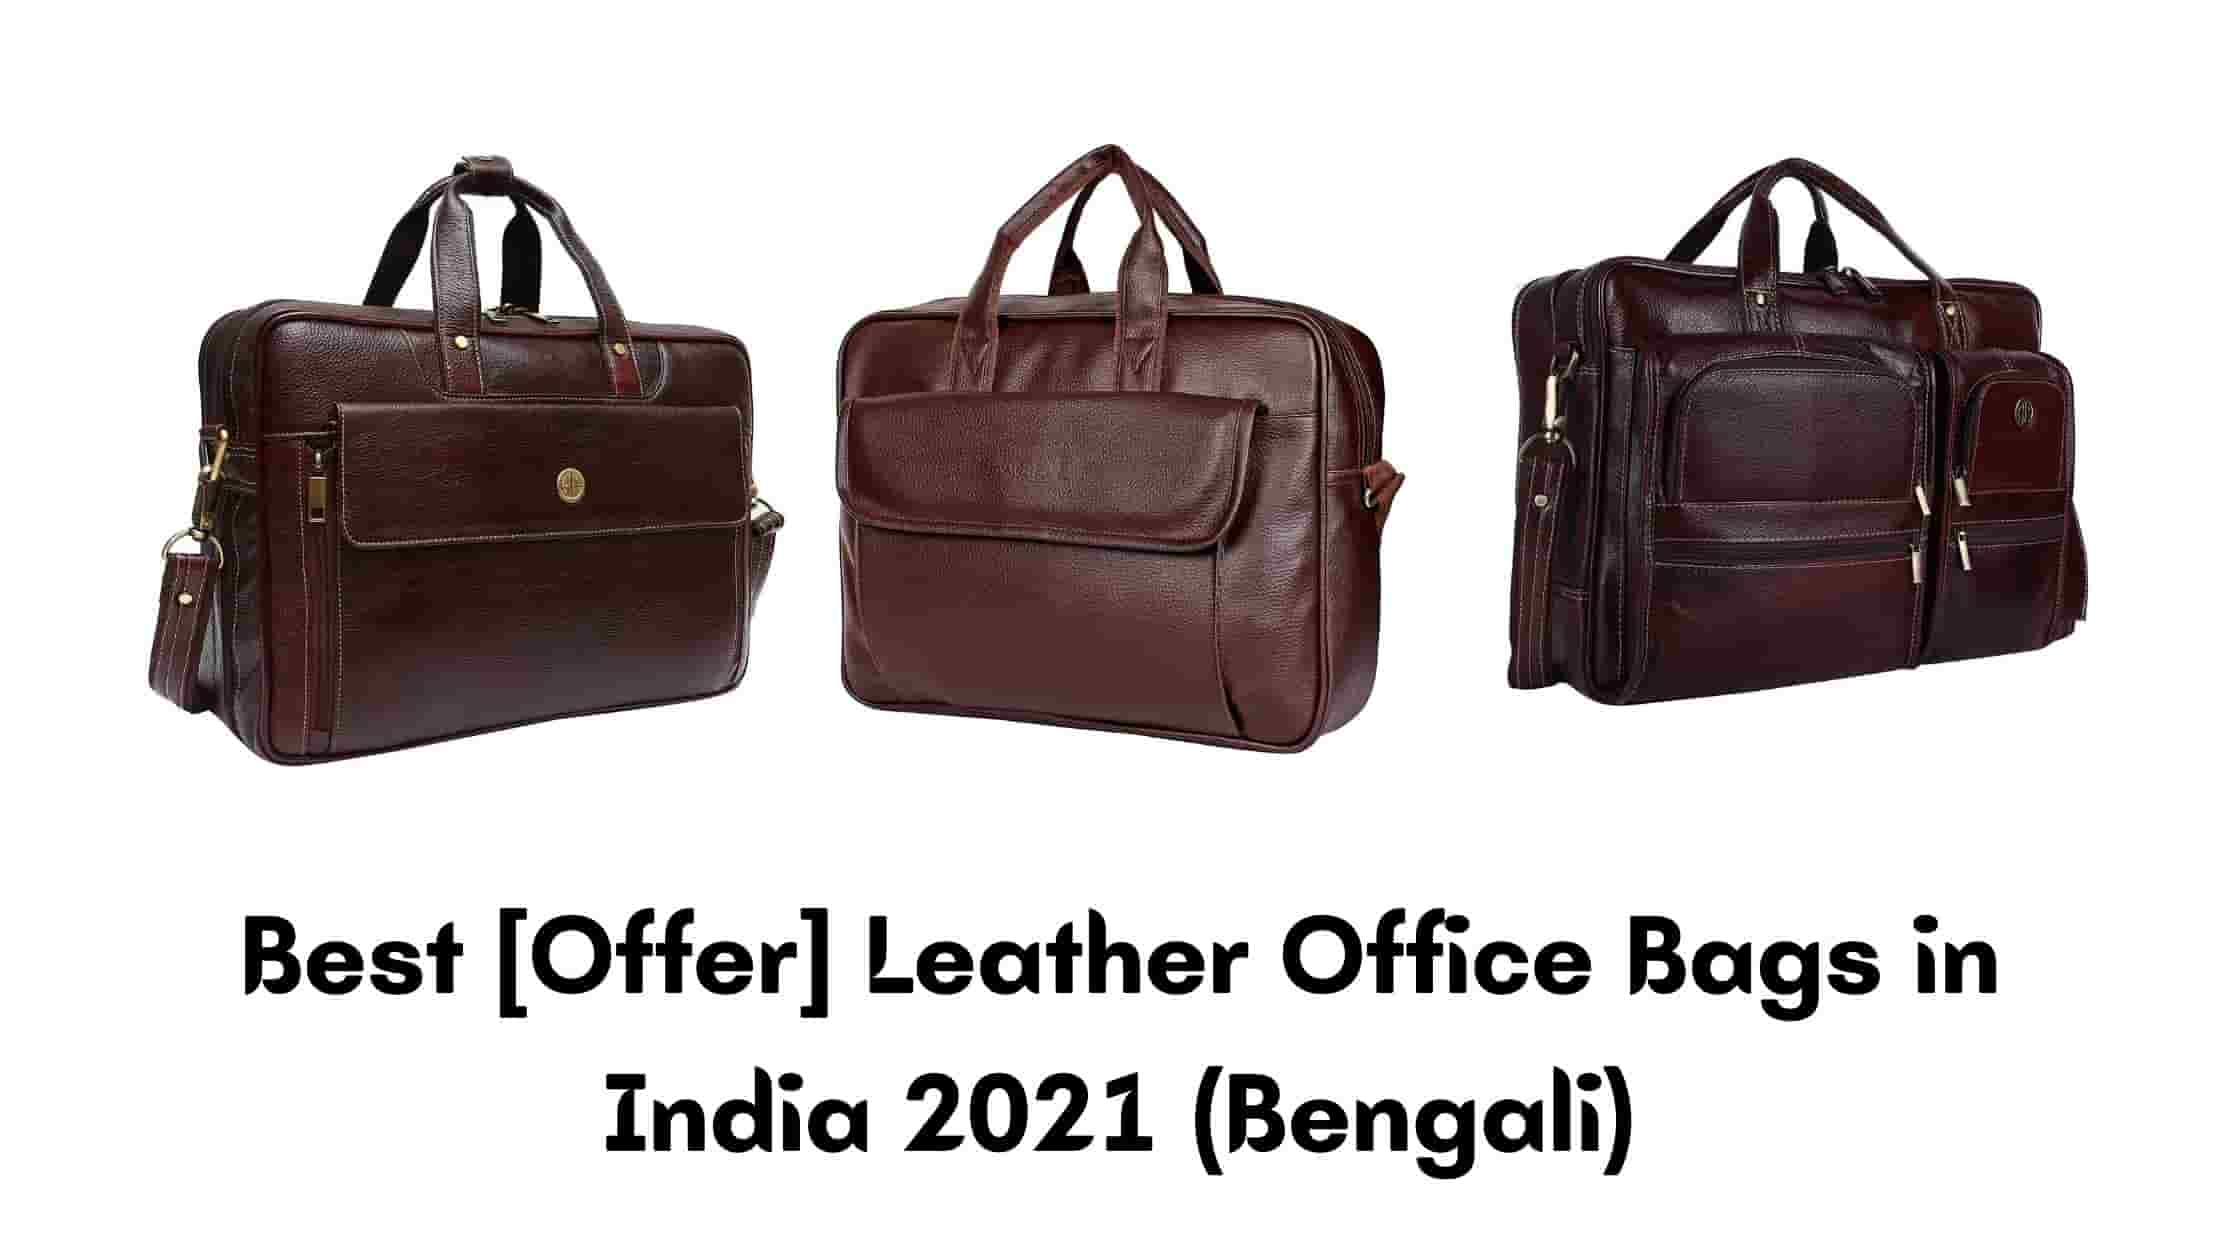 Best [Offer] Leather Office Bags in India 2021 (Bengali)